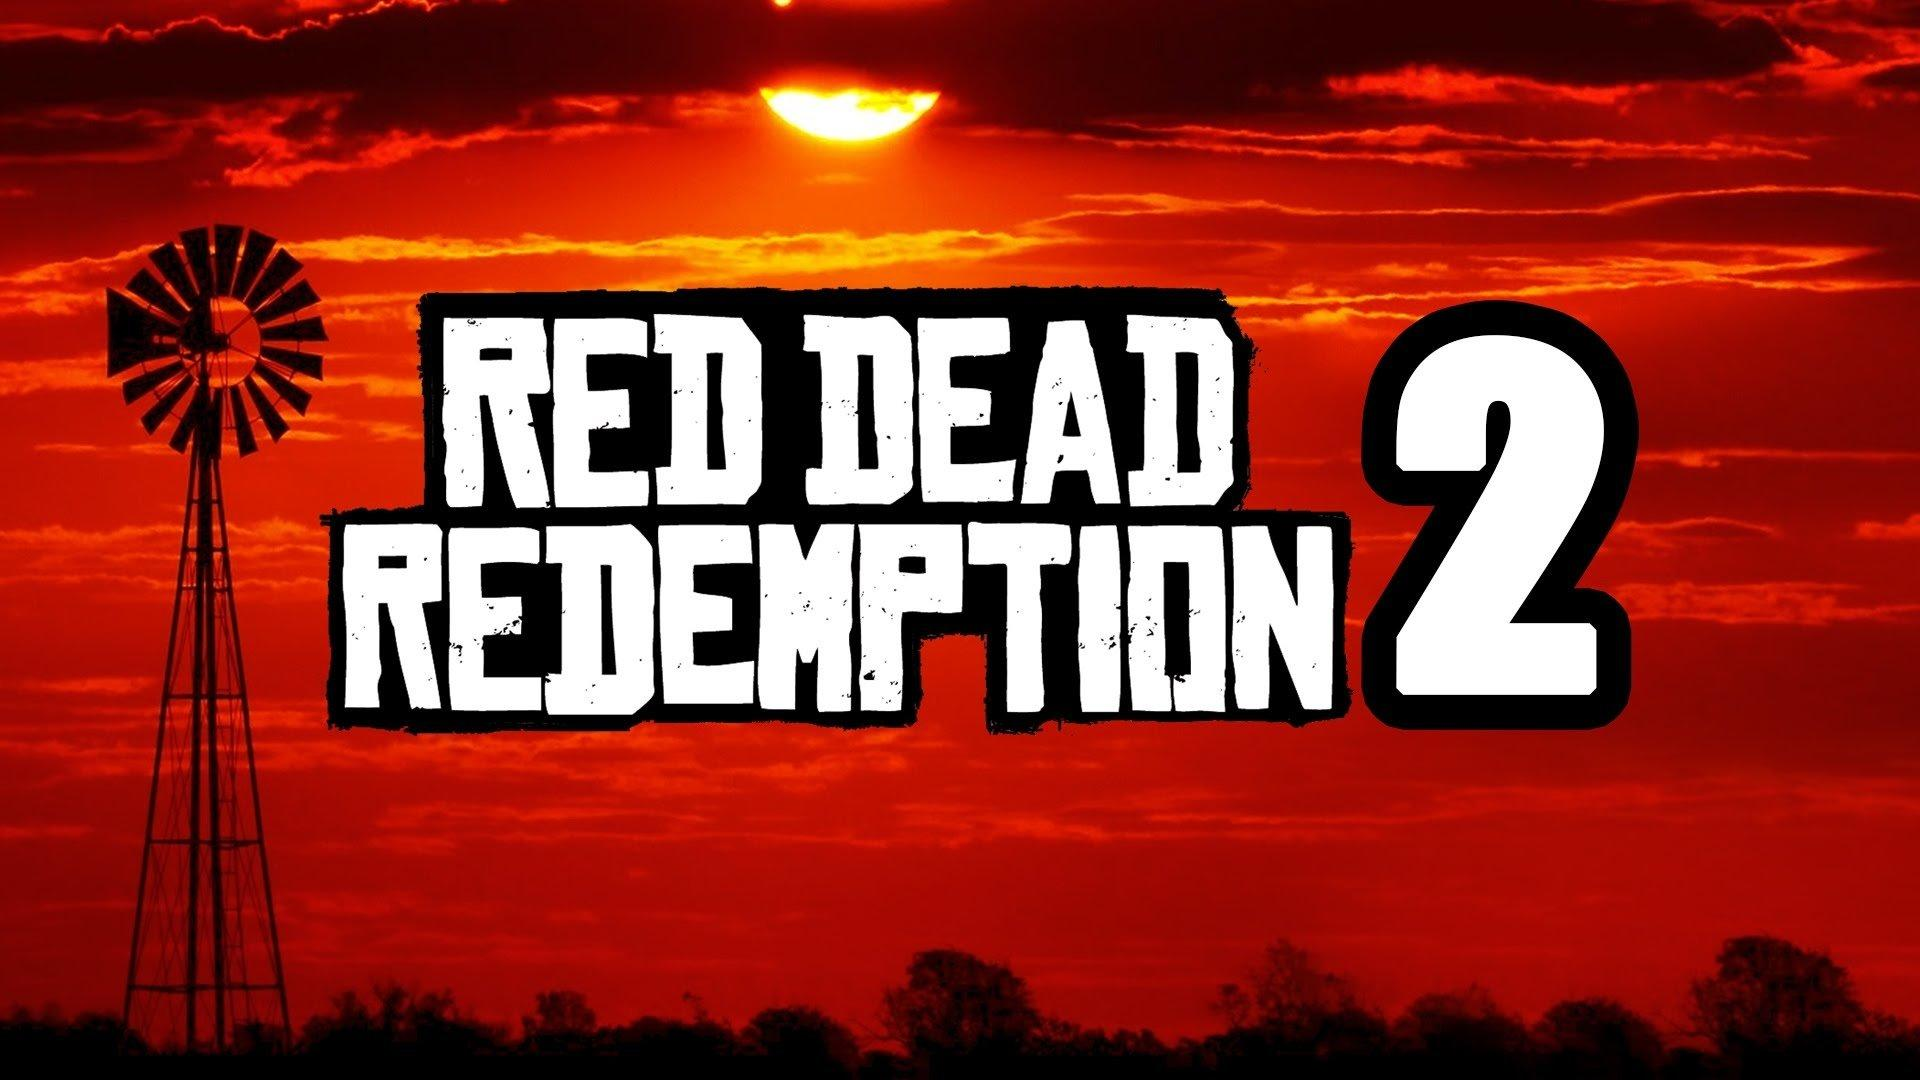 Red Dead Redemption 2 Hd Wallpapers Wallpaper Cave